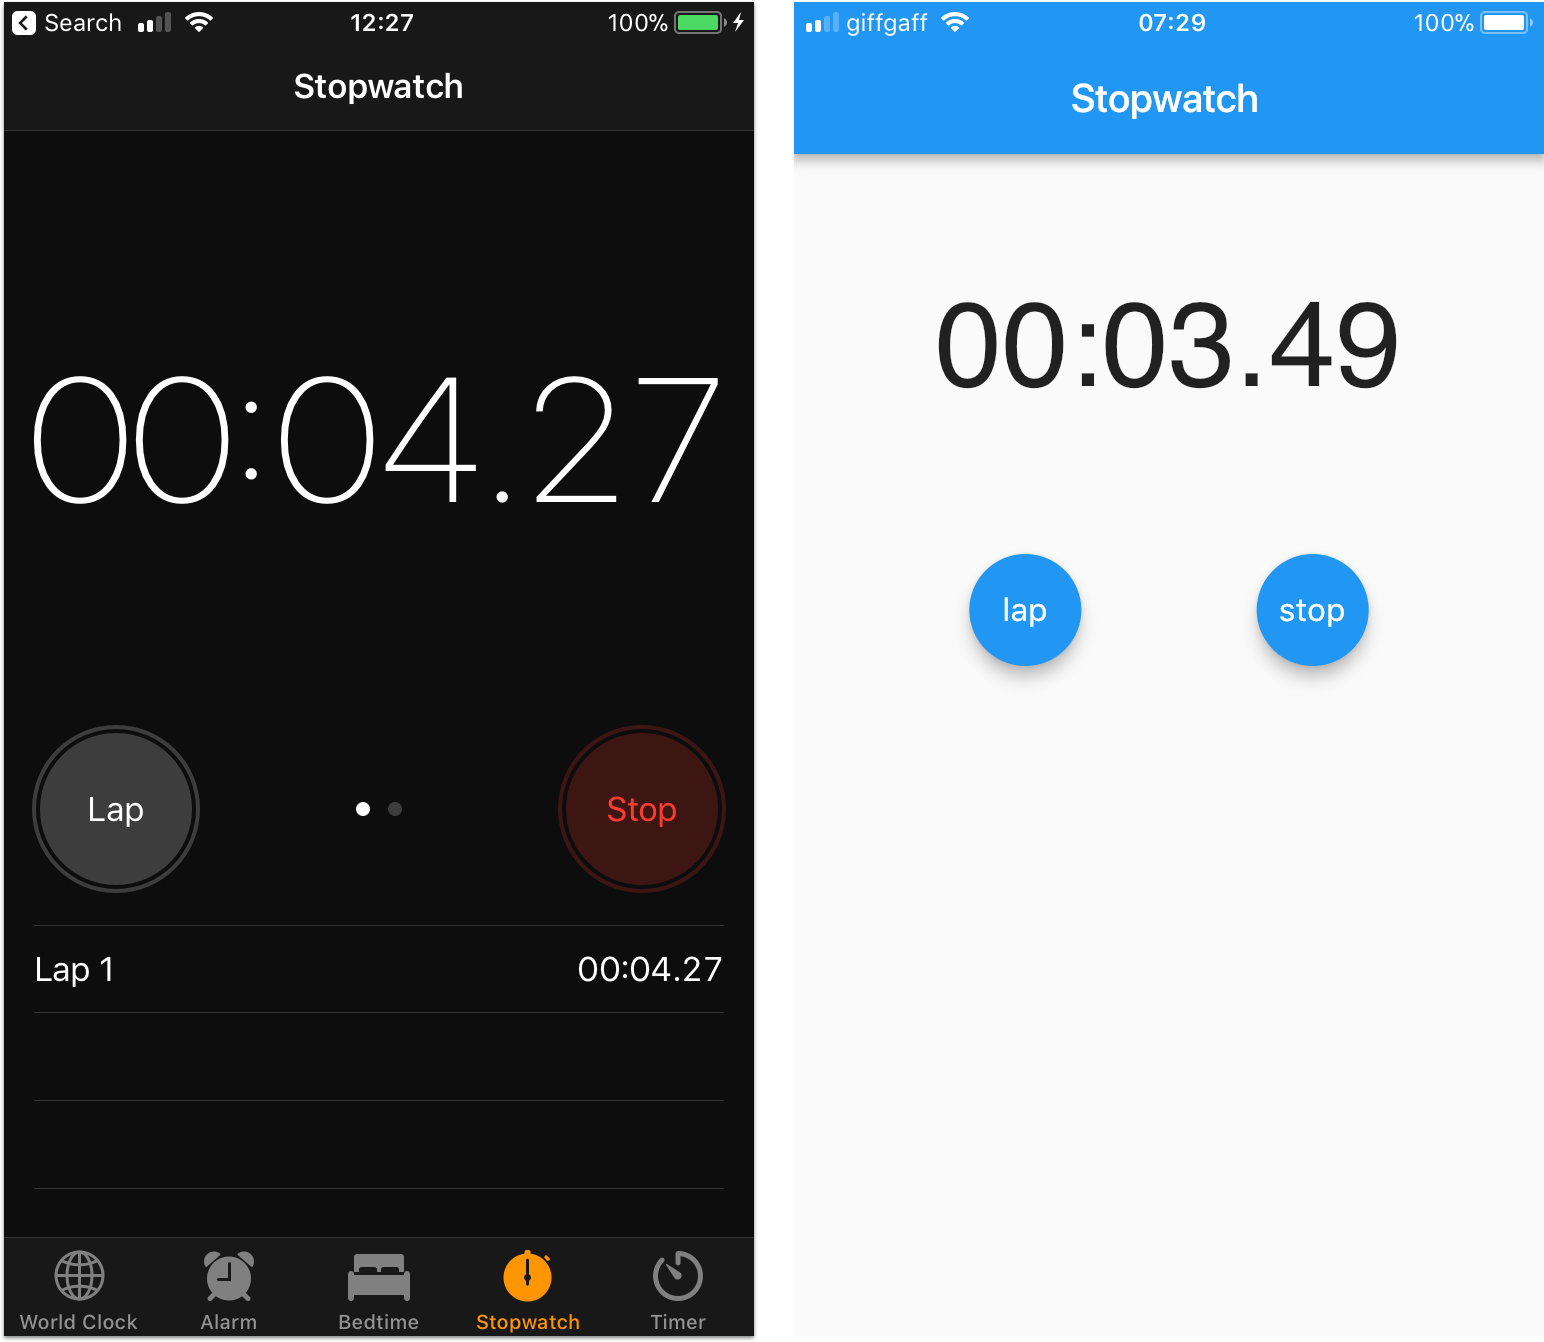 Sample stopwatch app built in Flutter